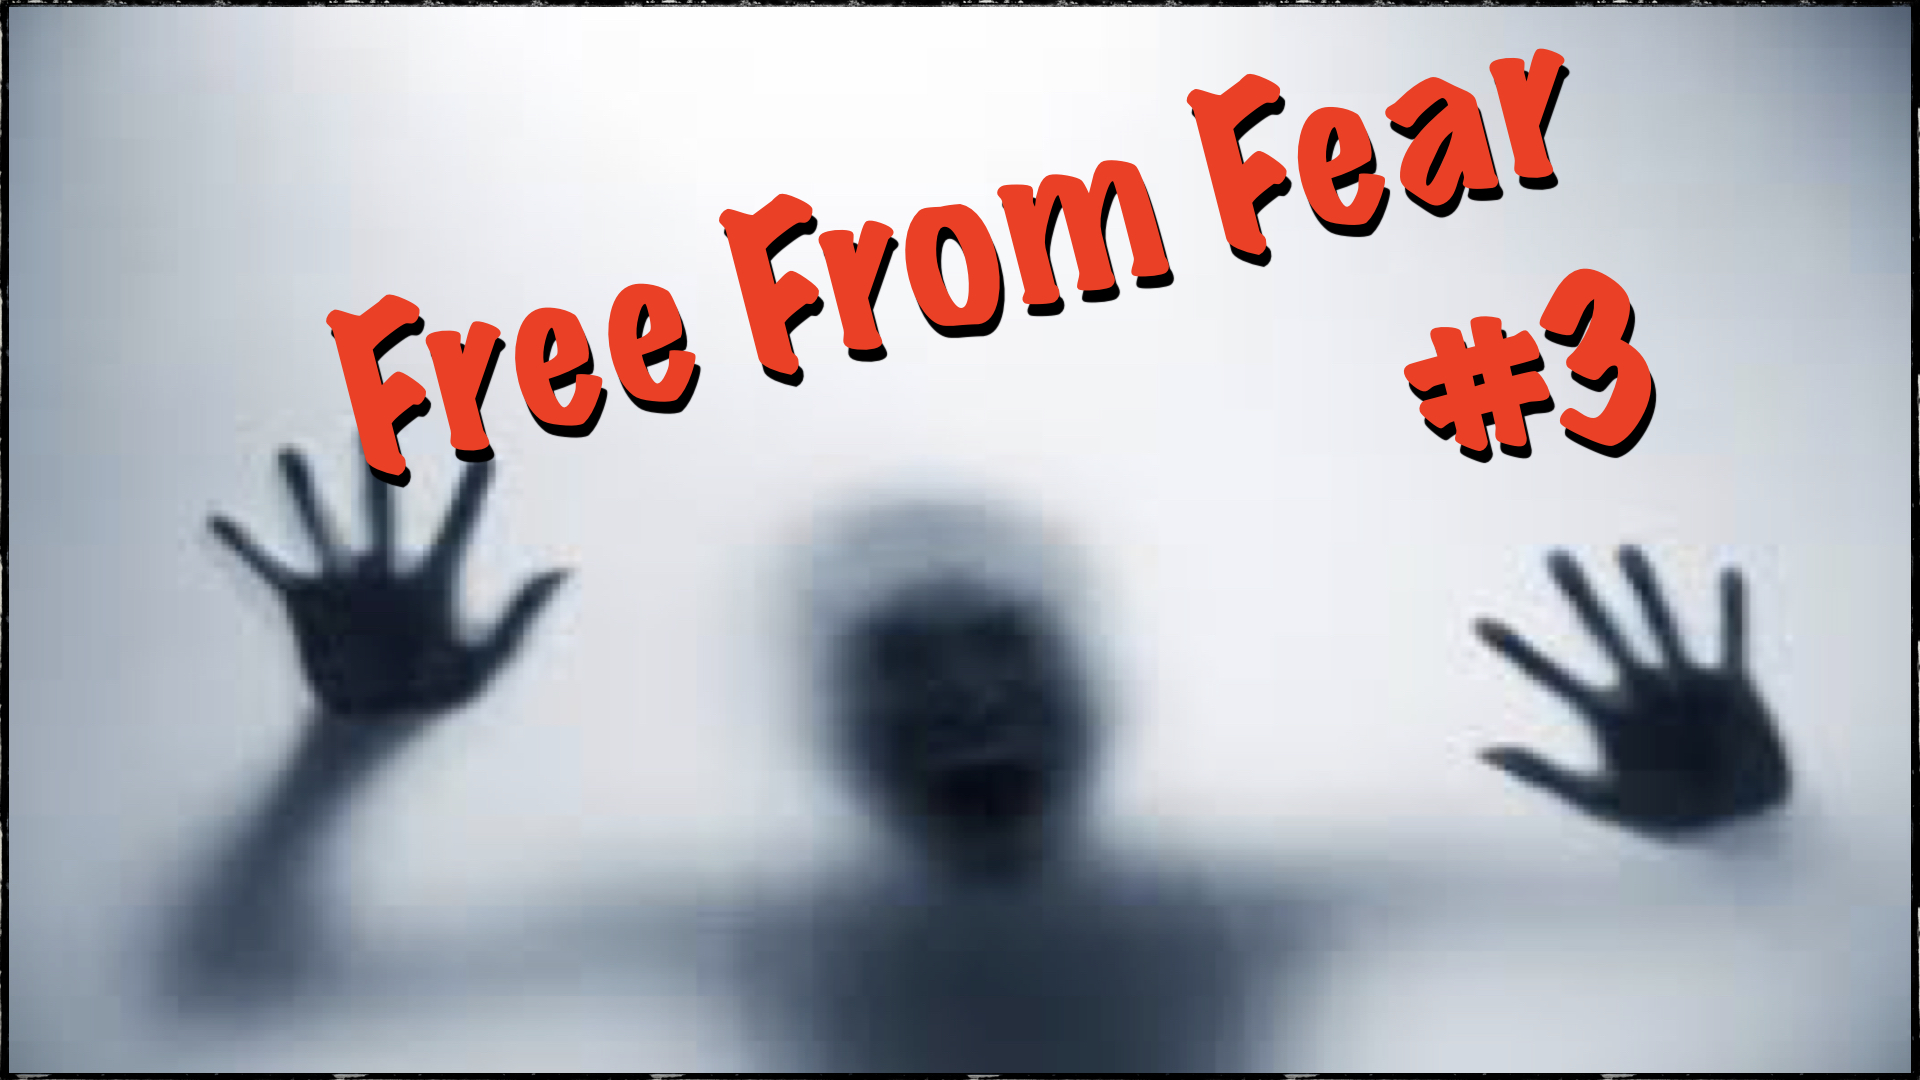 Free From Fear #3 2/14/2018 5:06:44 PM